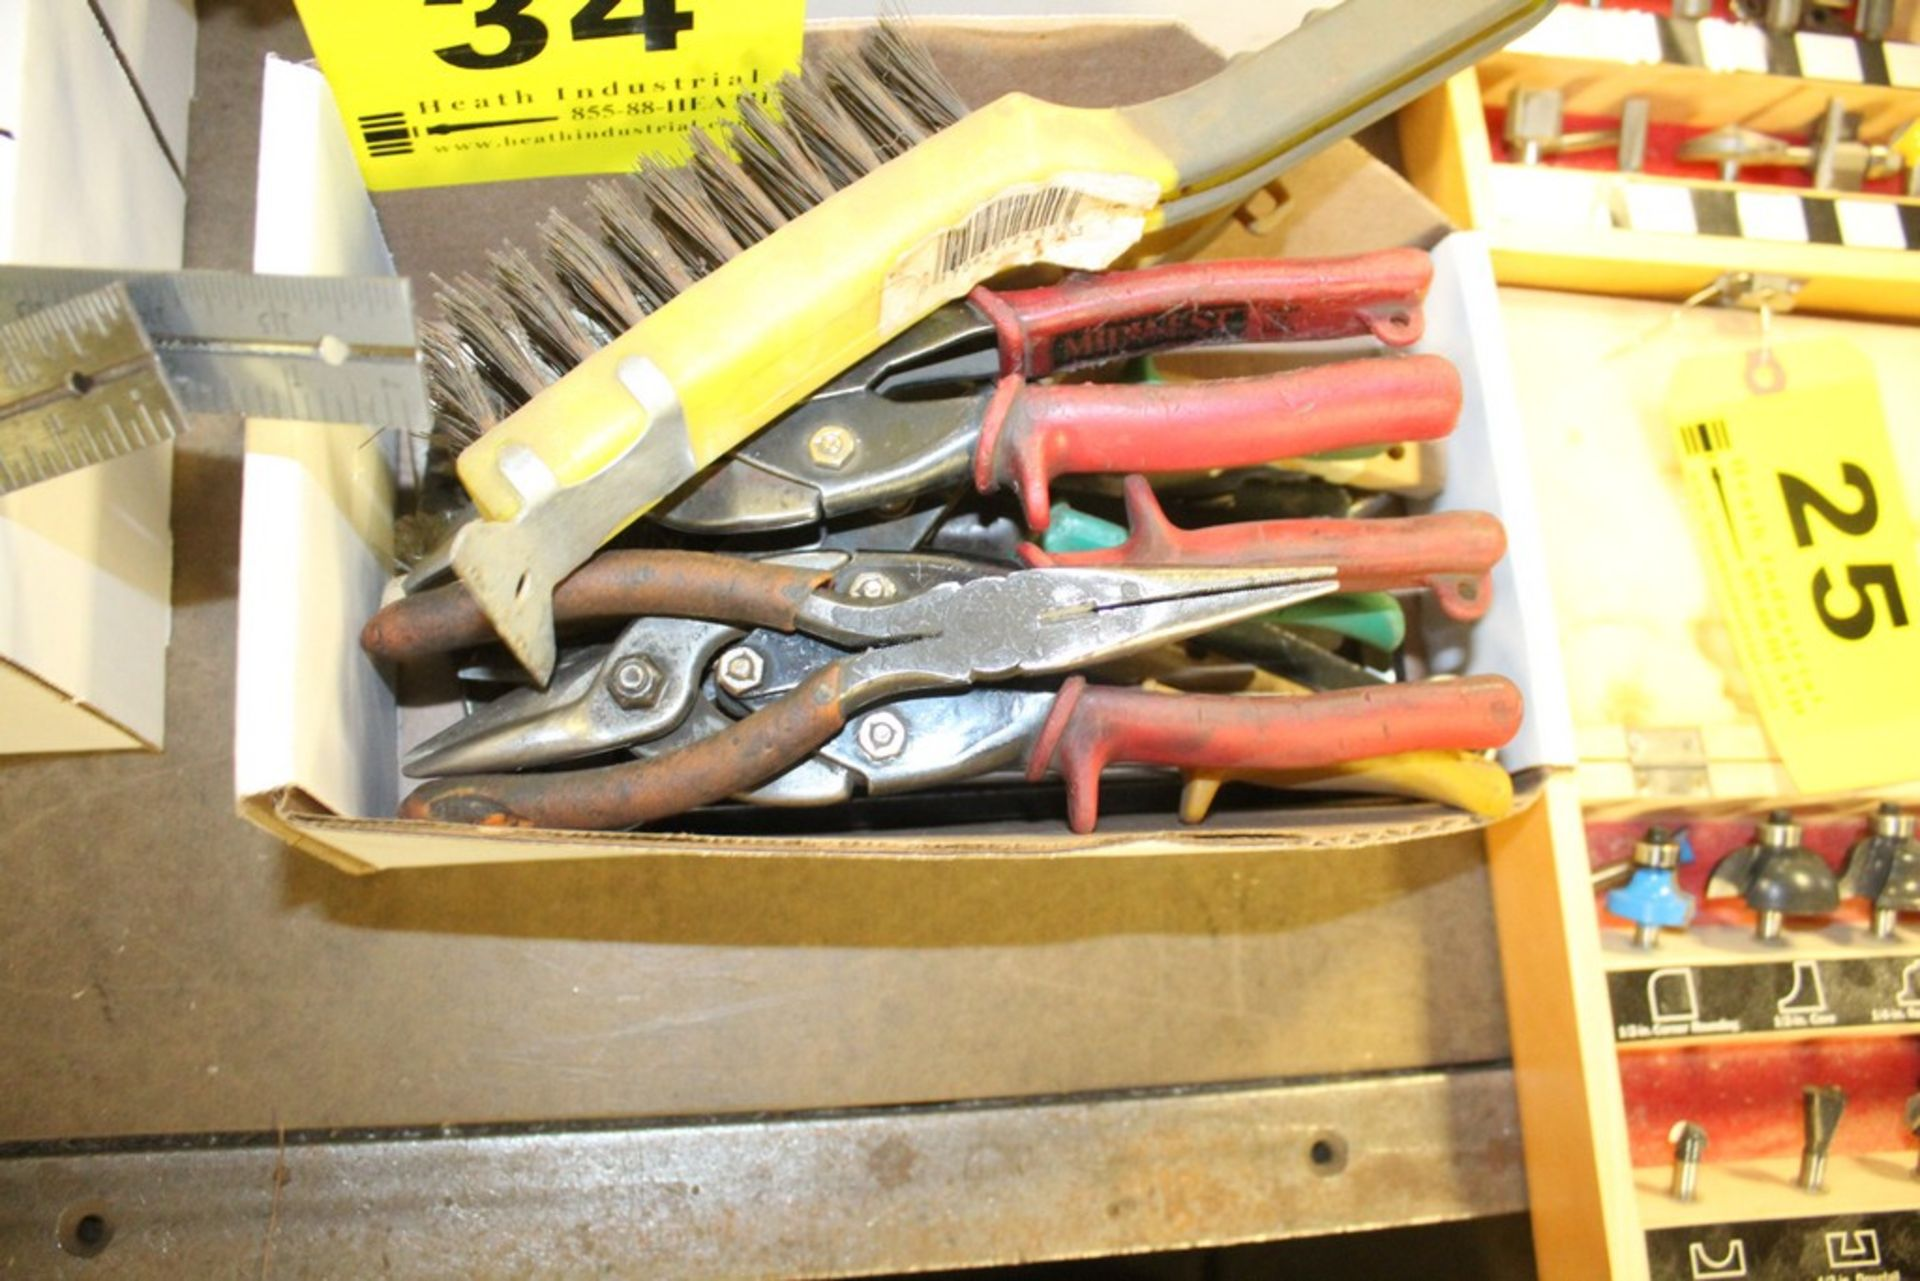 Lot 34 - ASSORTED PLIER, METAL SNIP, WIRE BRUSHES, ETC. IN BOX